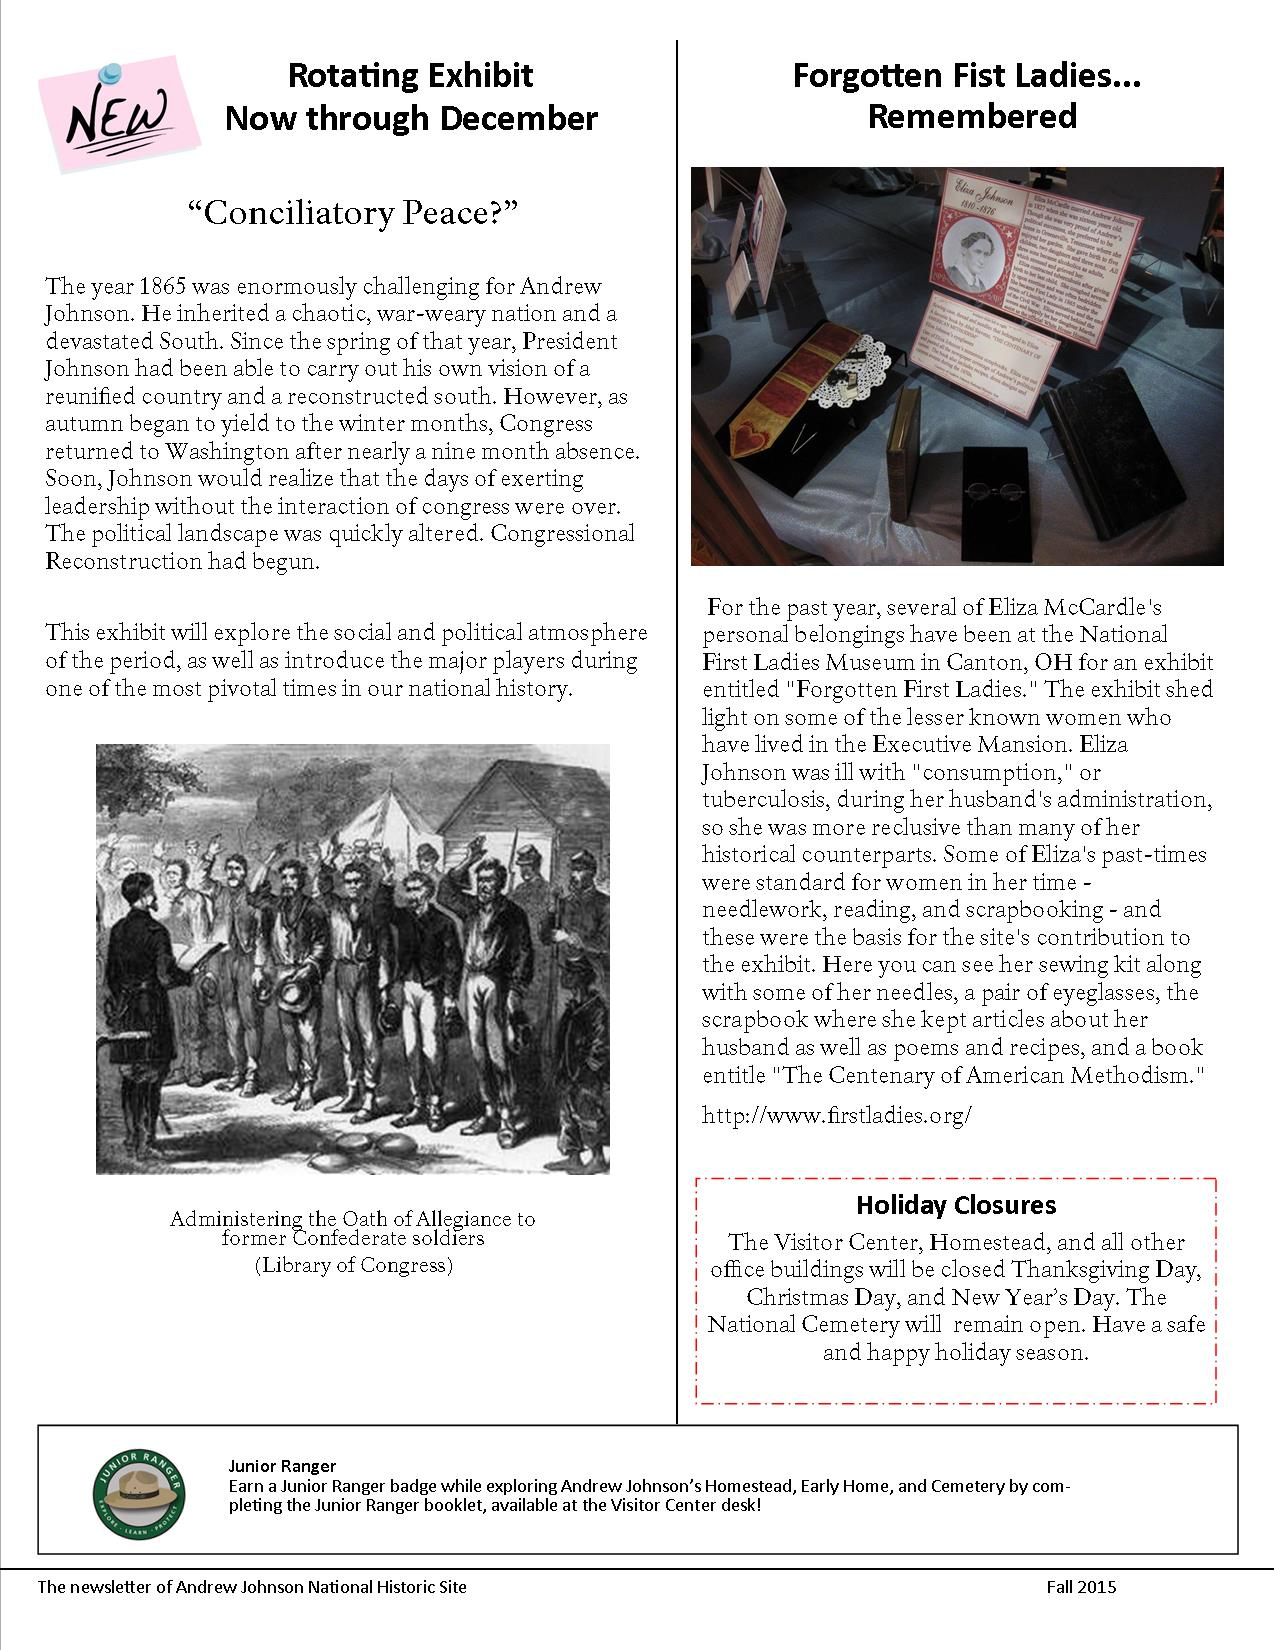 NEWSLETTER FALL 2015 (2)